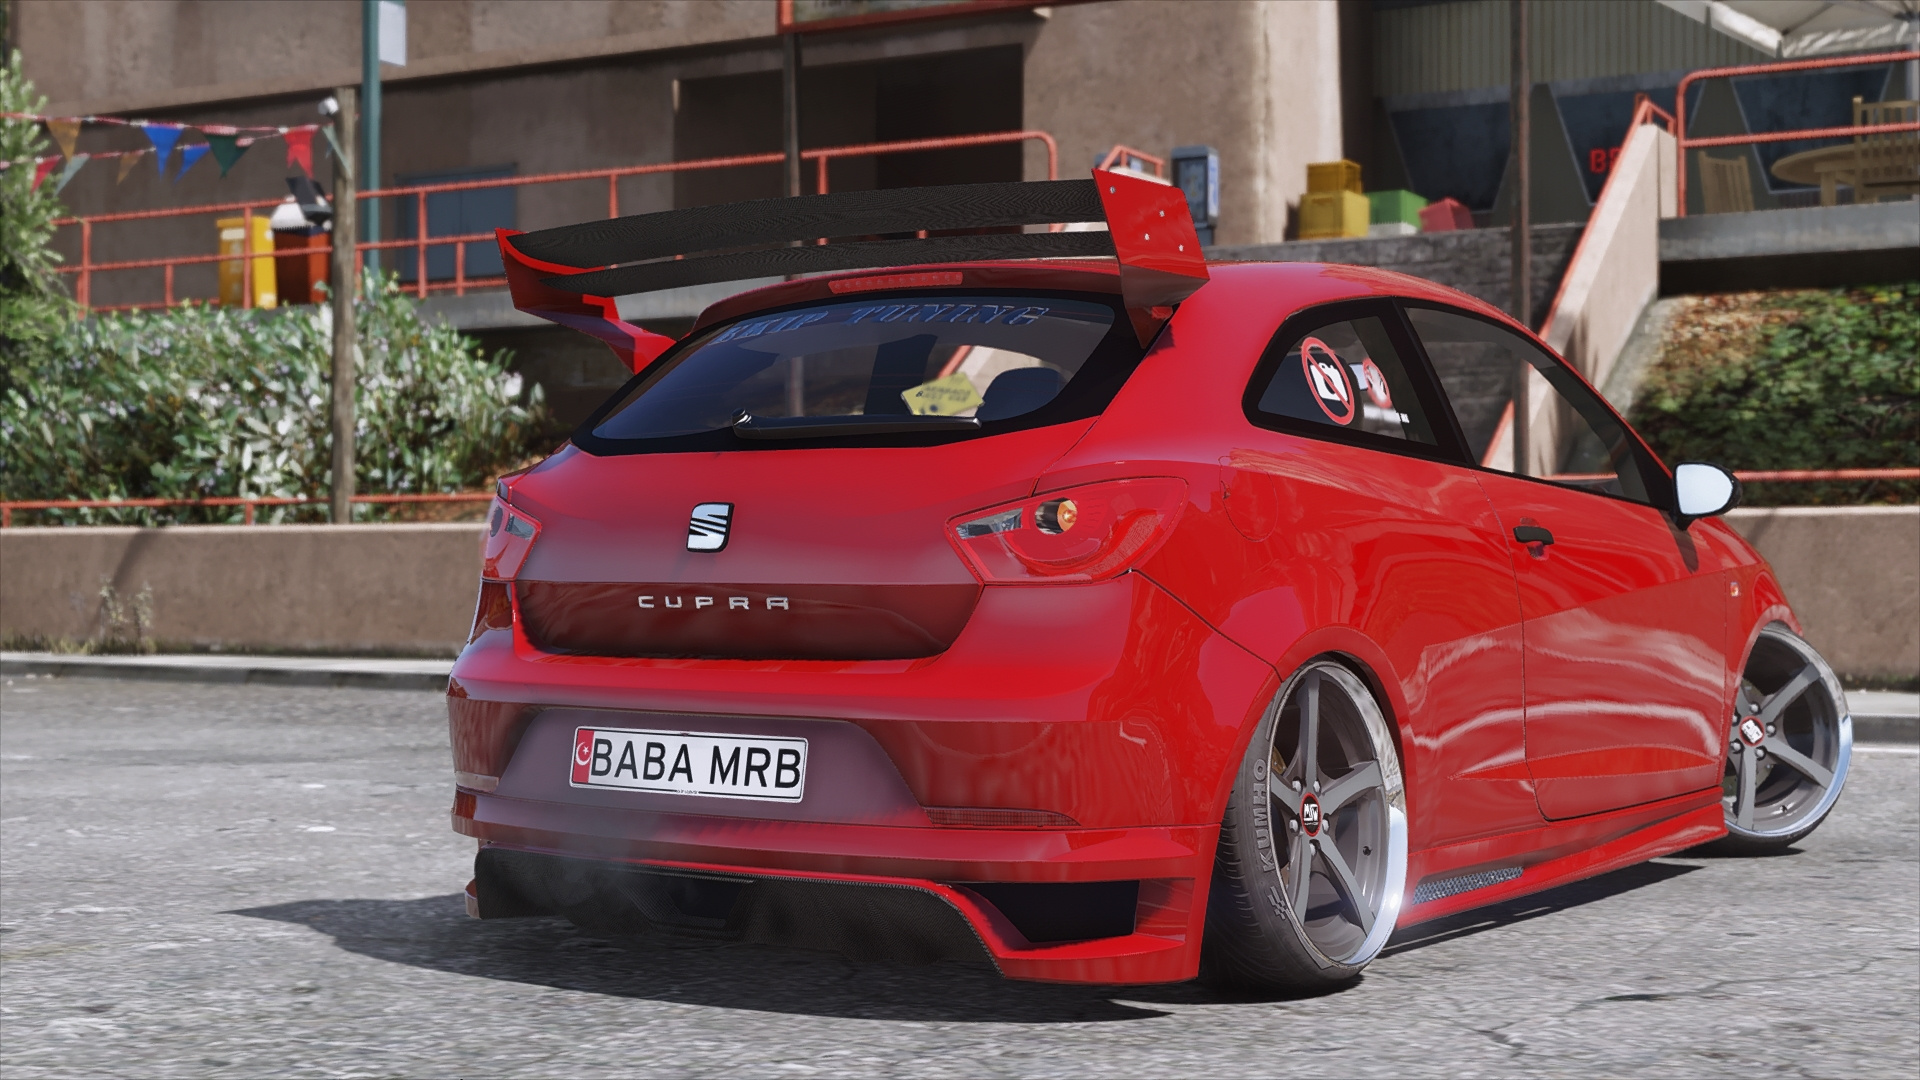 Seat Ibiza Cupra [Add-On] - GTA5-Mods.com